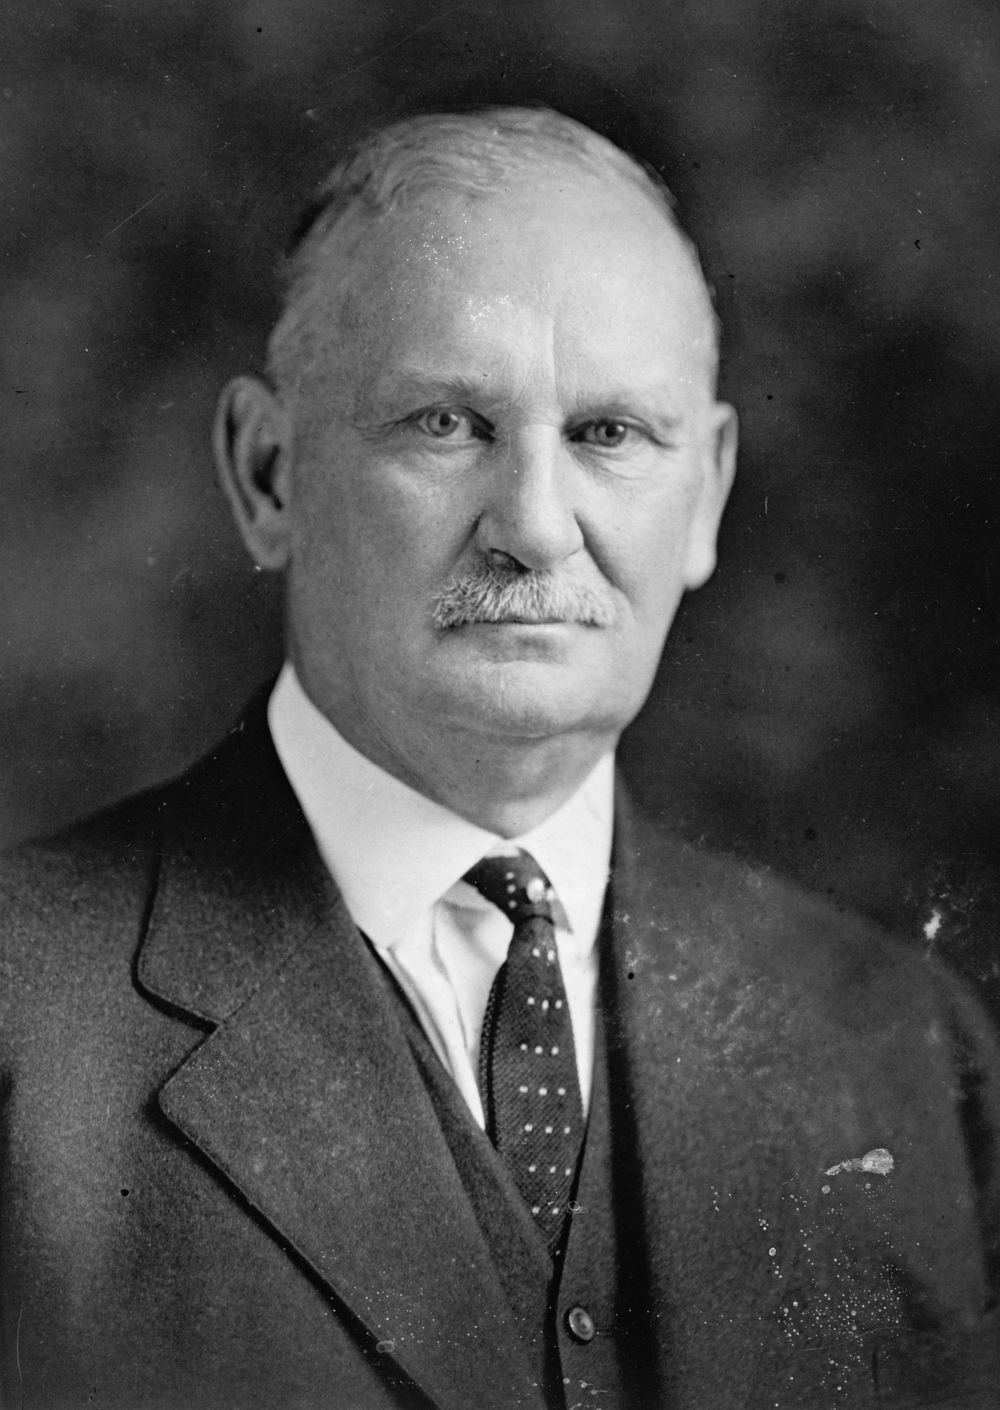 Former Oregon Congressman Willis Hawley lost his bid for re-election in 1932 after the bill he passed quadrupling U.S. trade tariffs deepened the Great Depression.